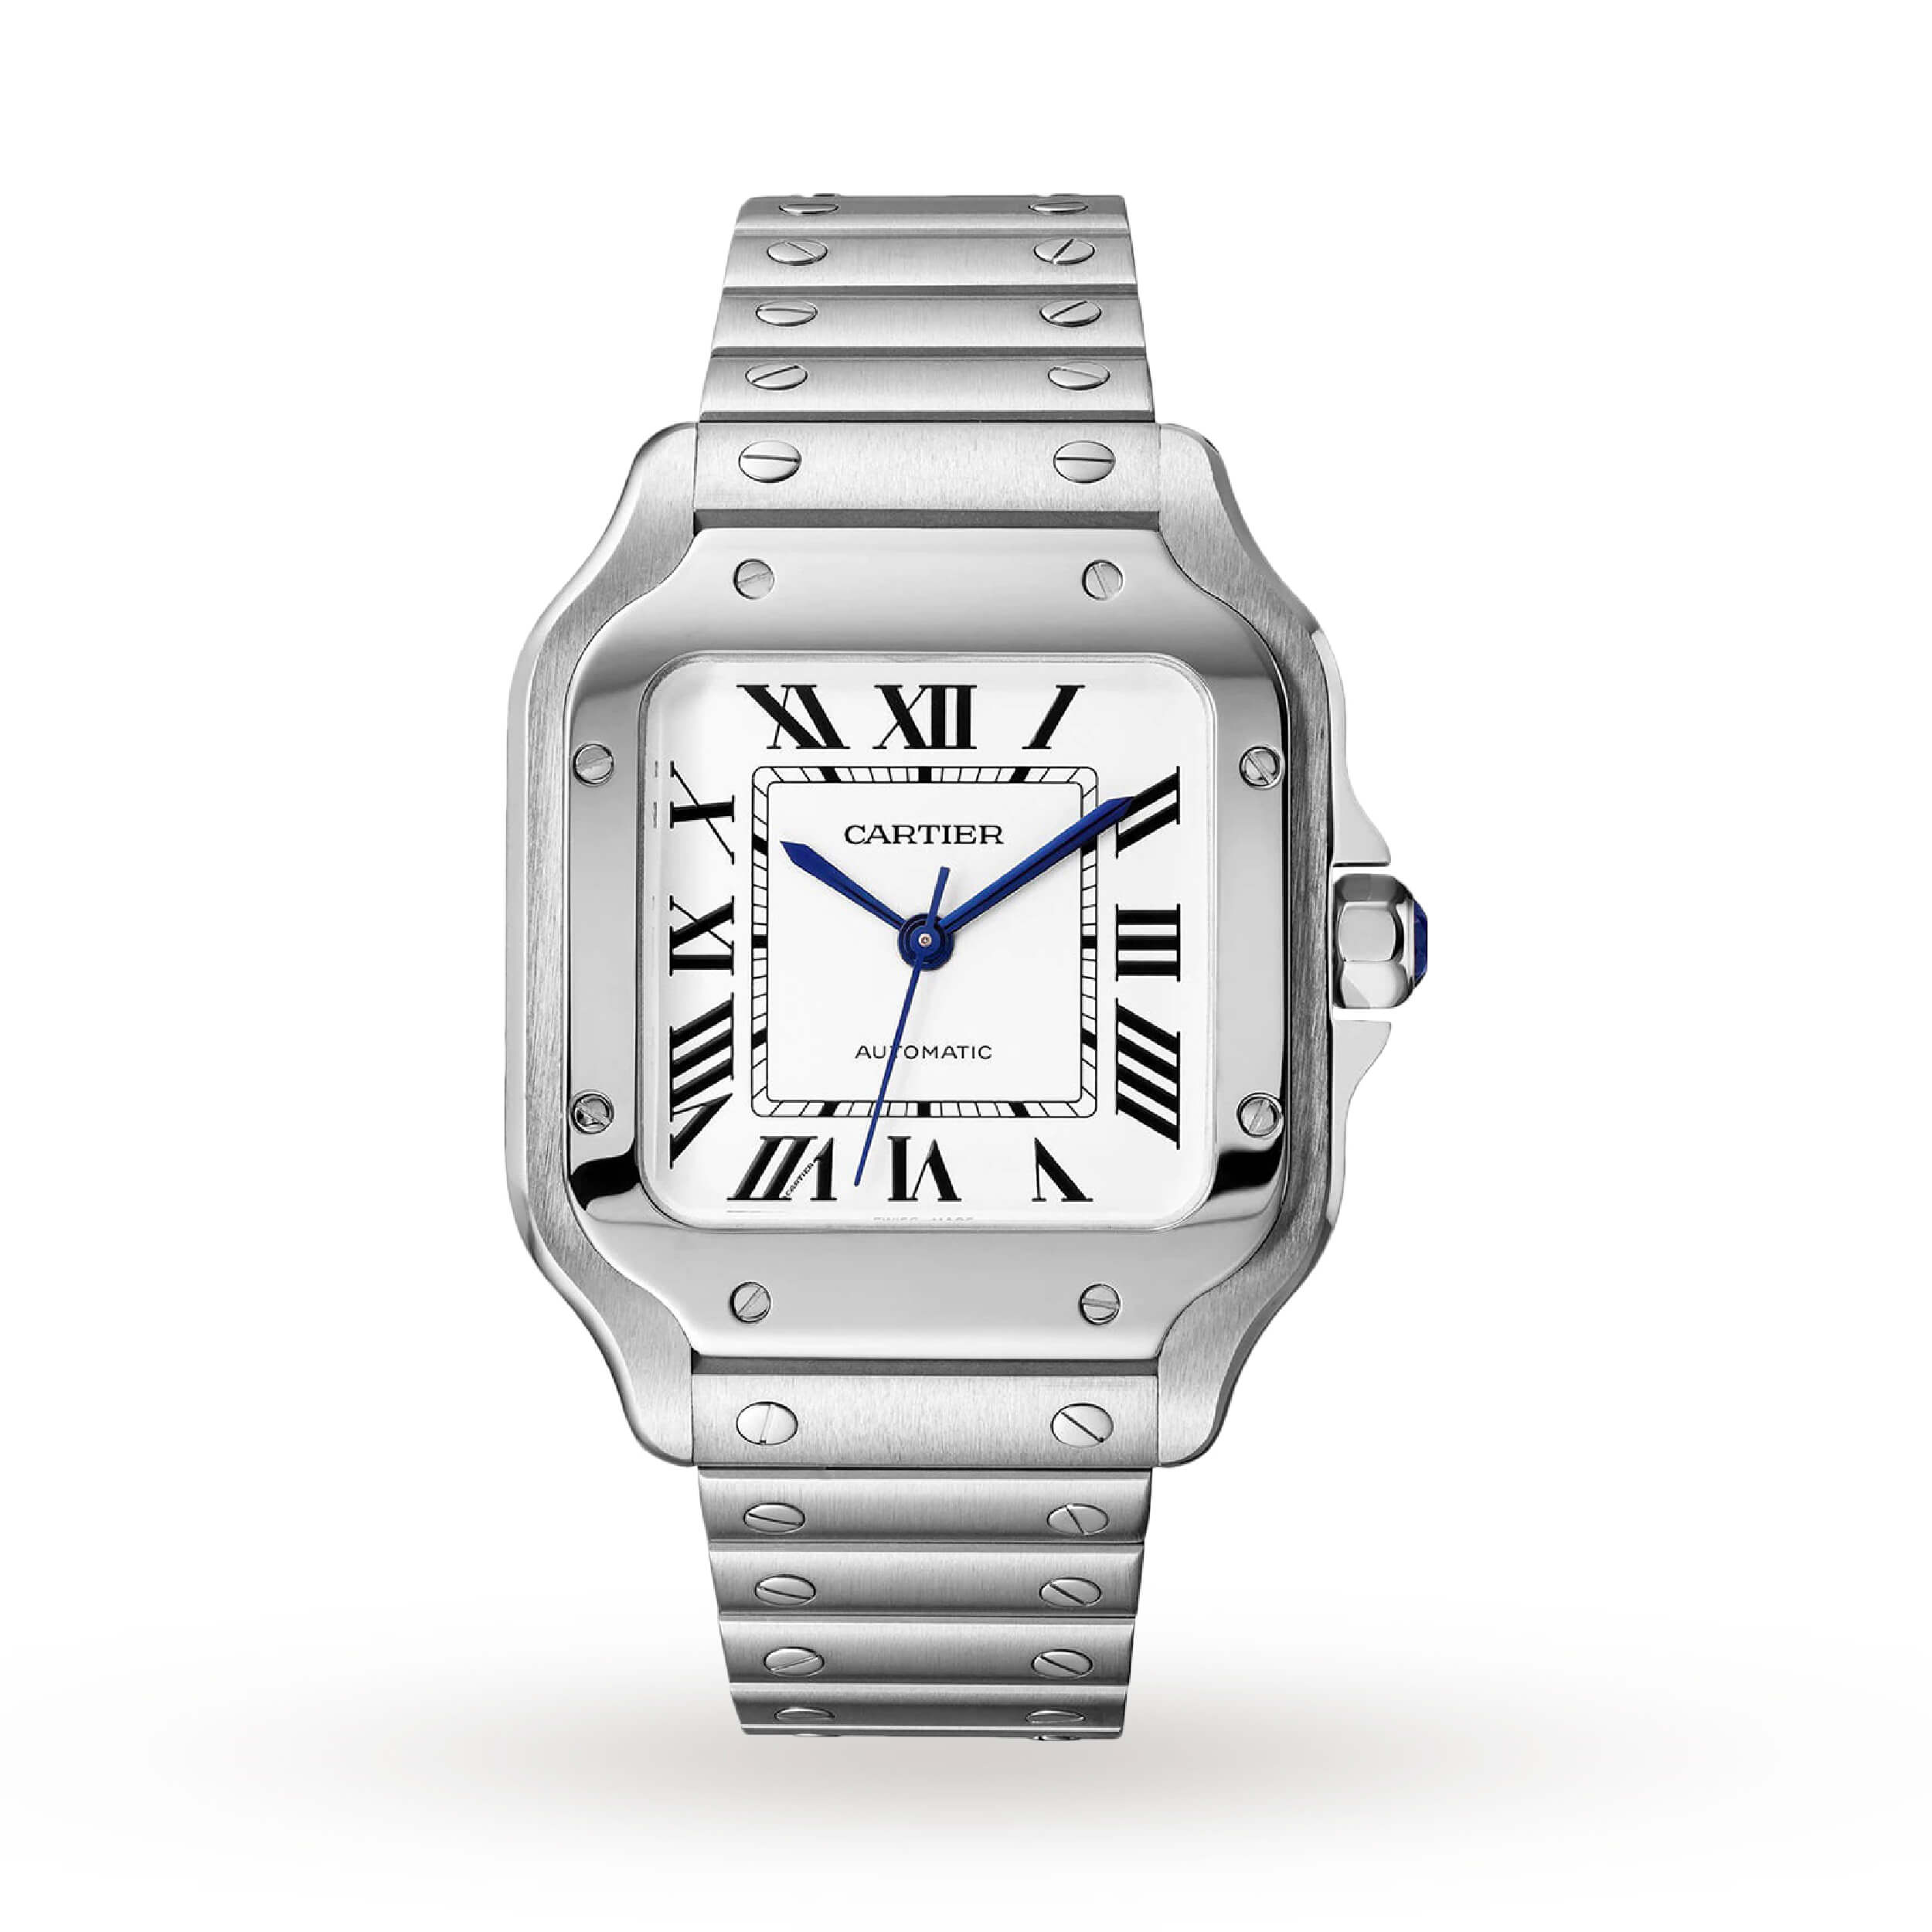 Santos De Cartier | Best watches under £10000